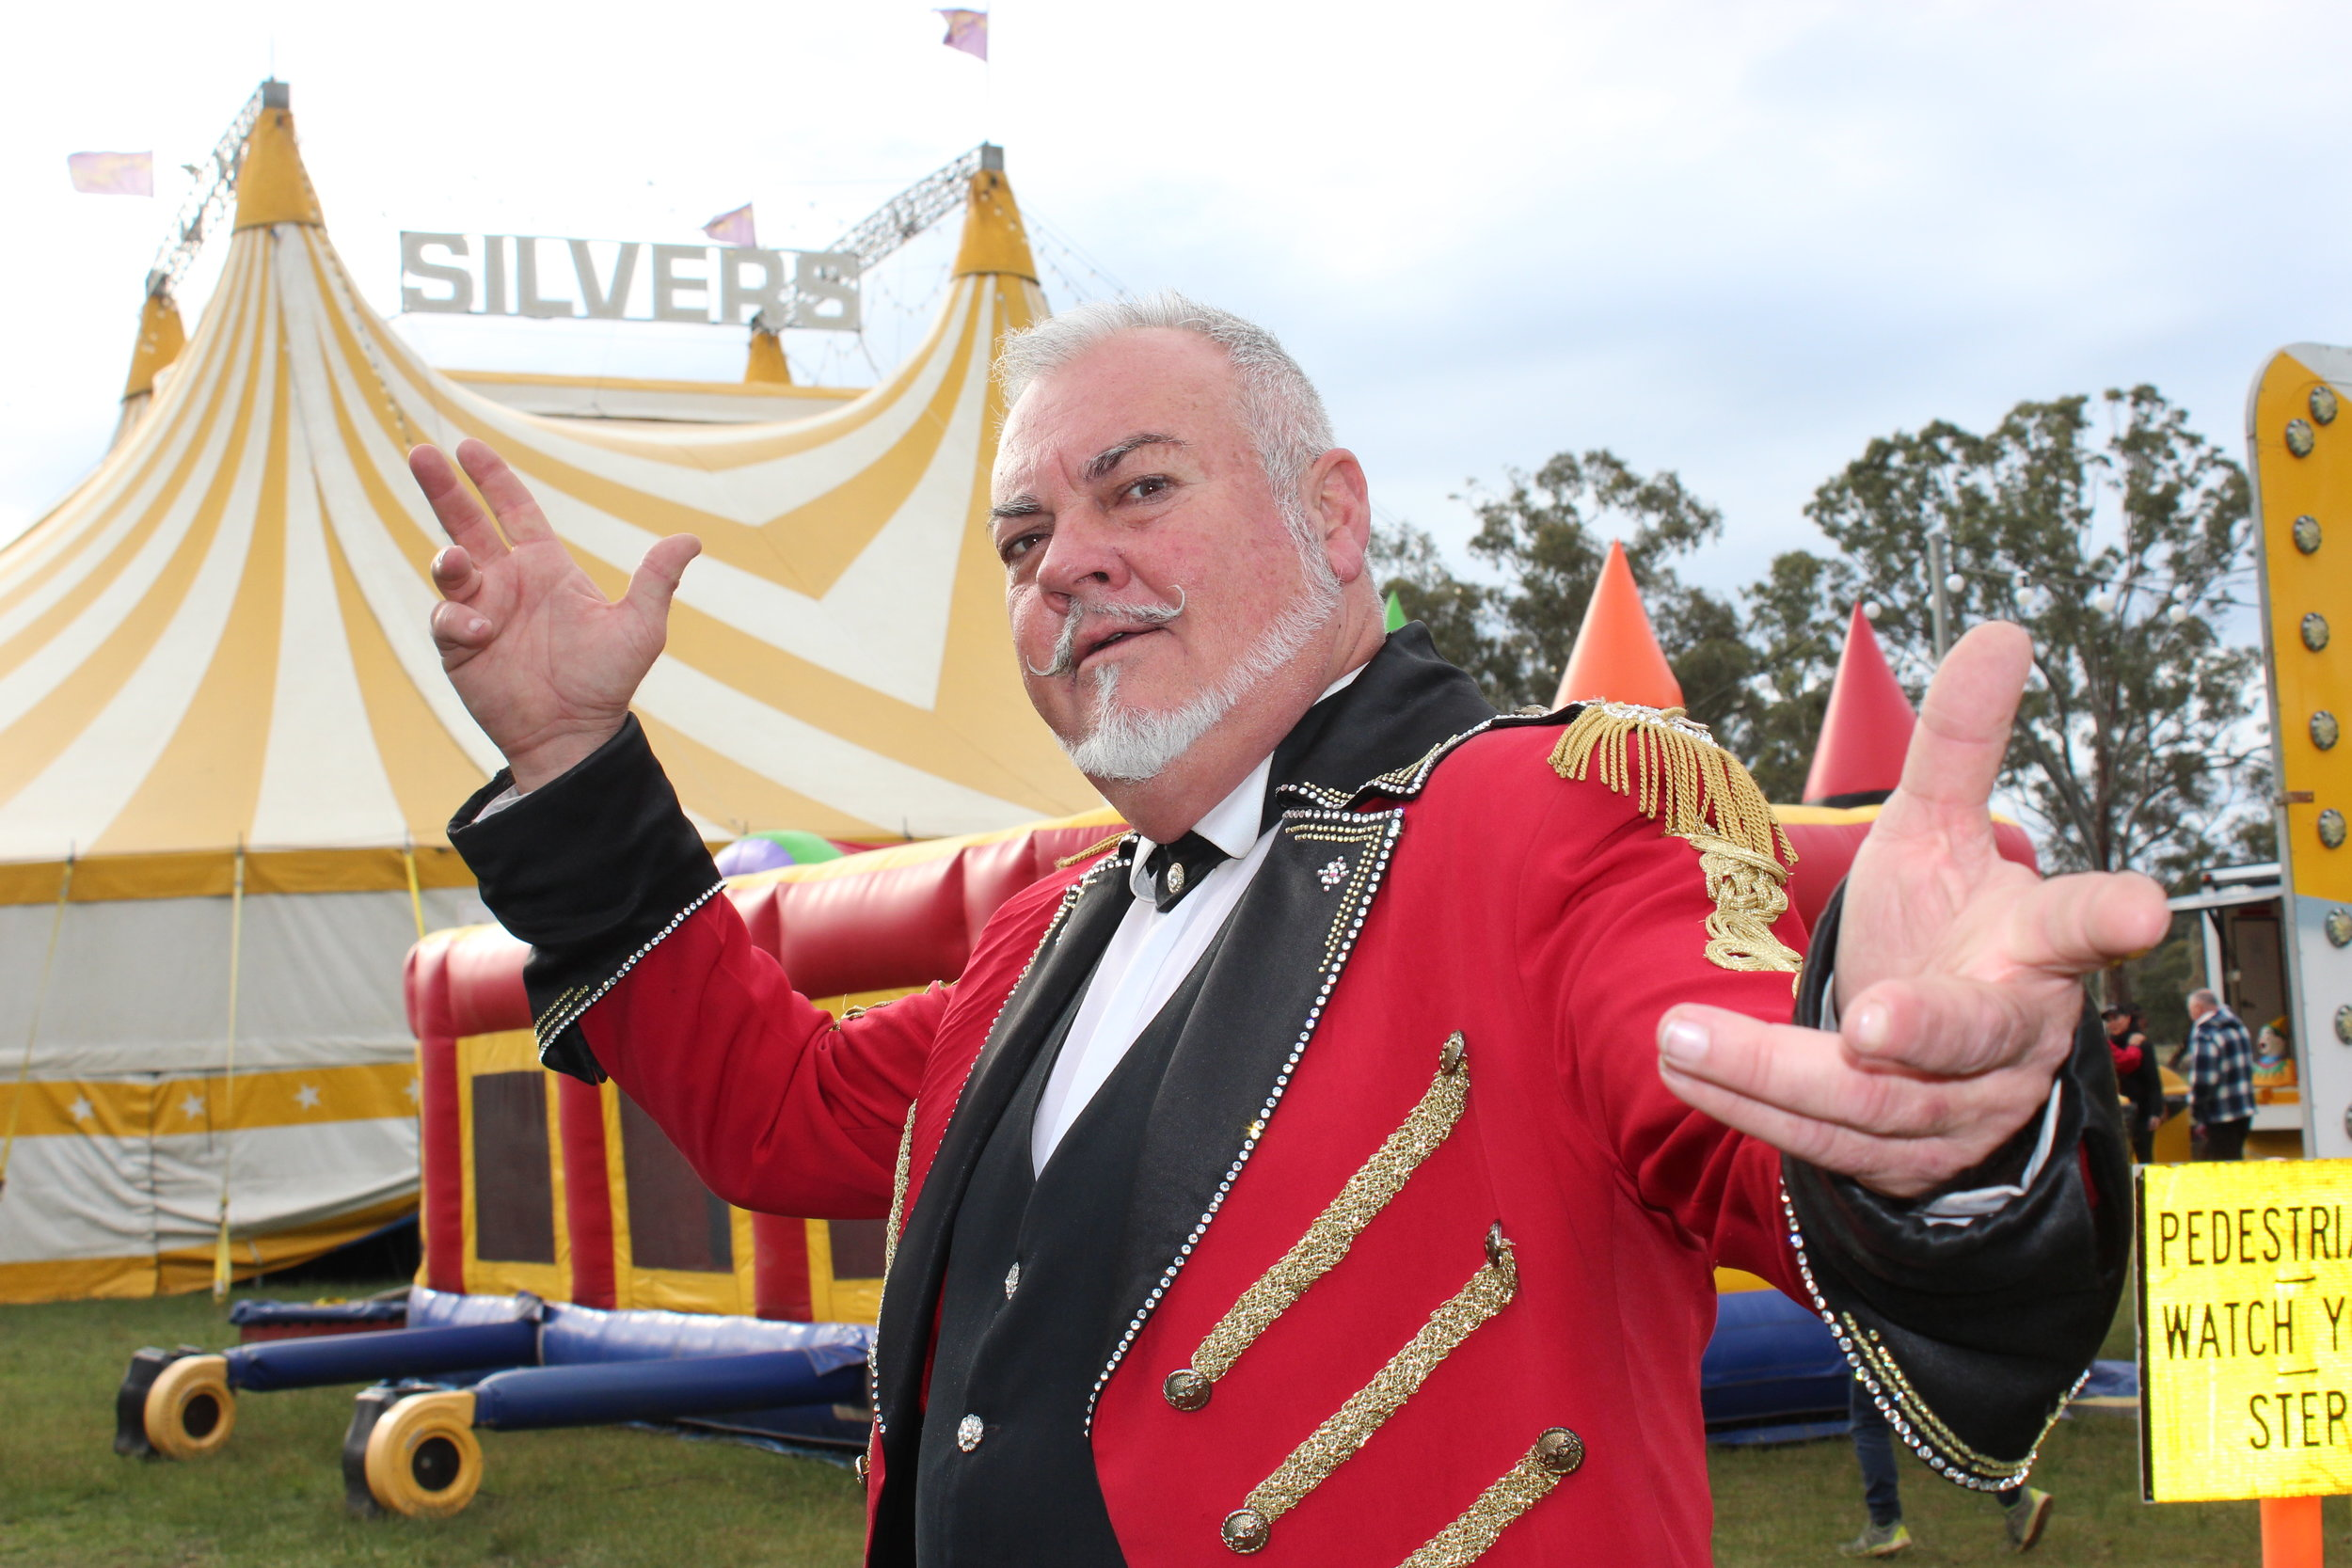 Ringmaster, Simon Tait, is excited that Silvers Circus has significantly evolved through international acts and technology.